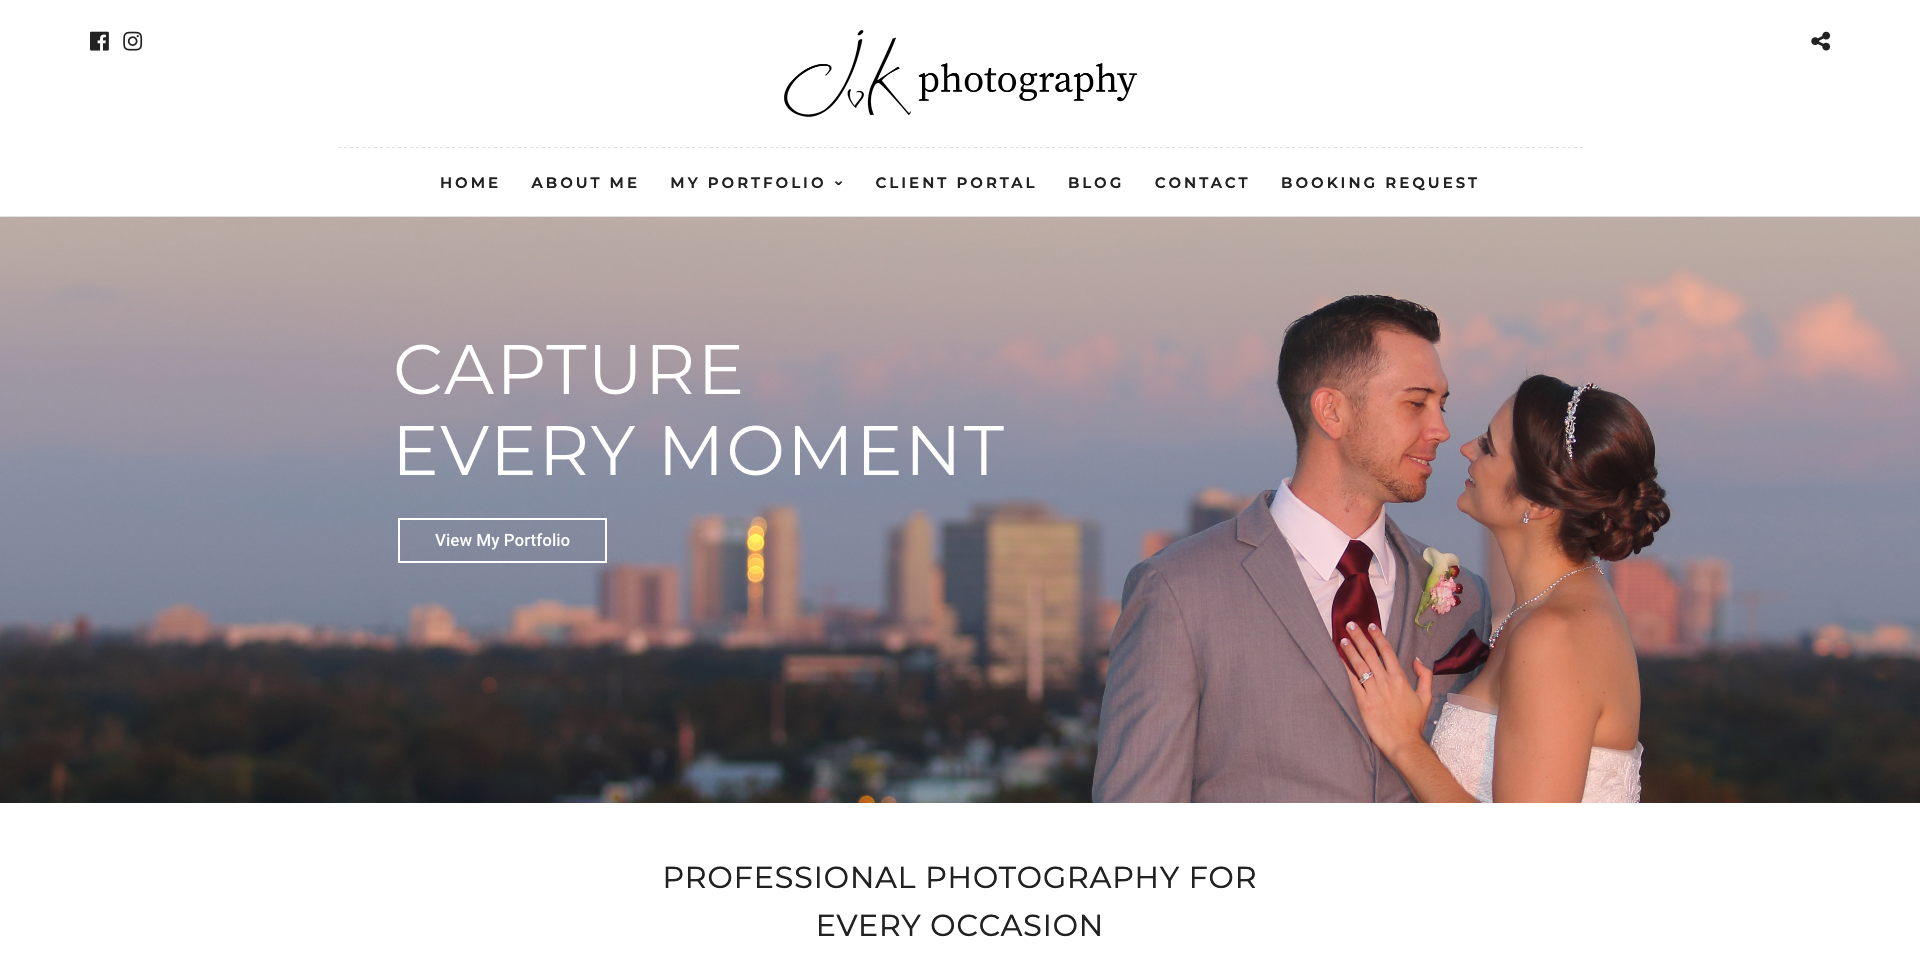 Fold - JVK Photography - Professional Photography For Every Occasion_ - jvkphotography.com